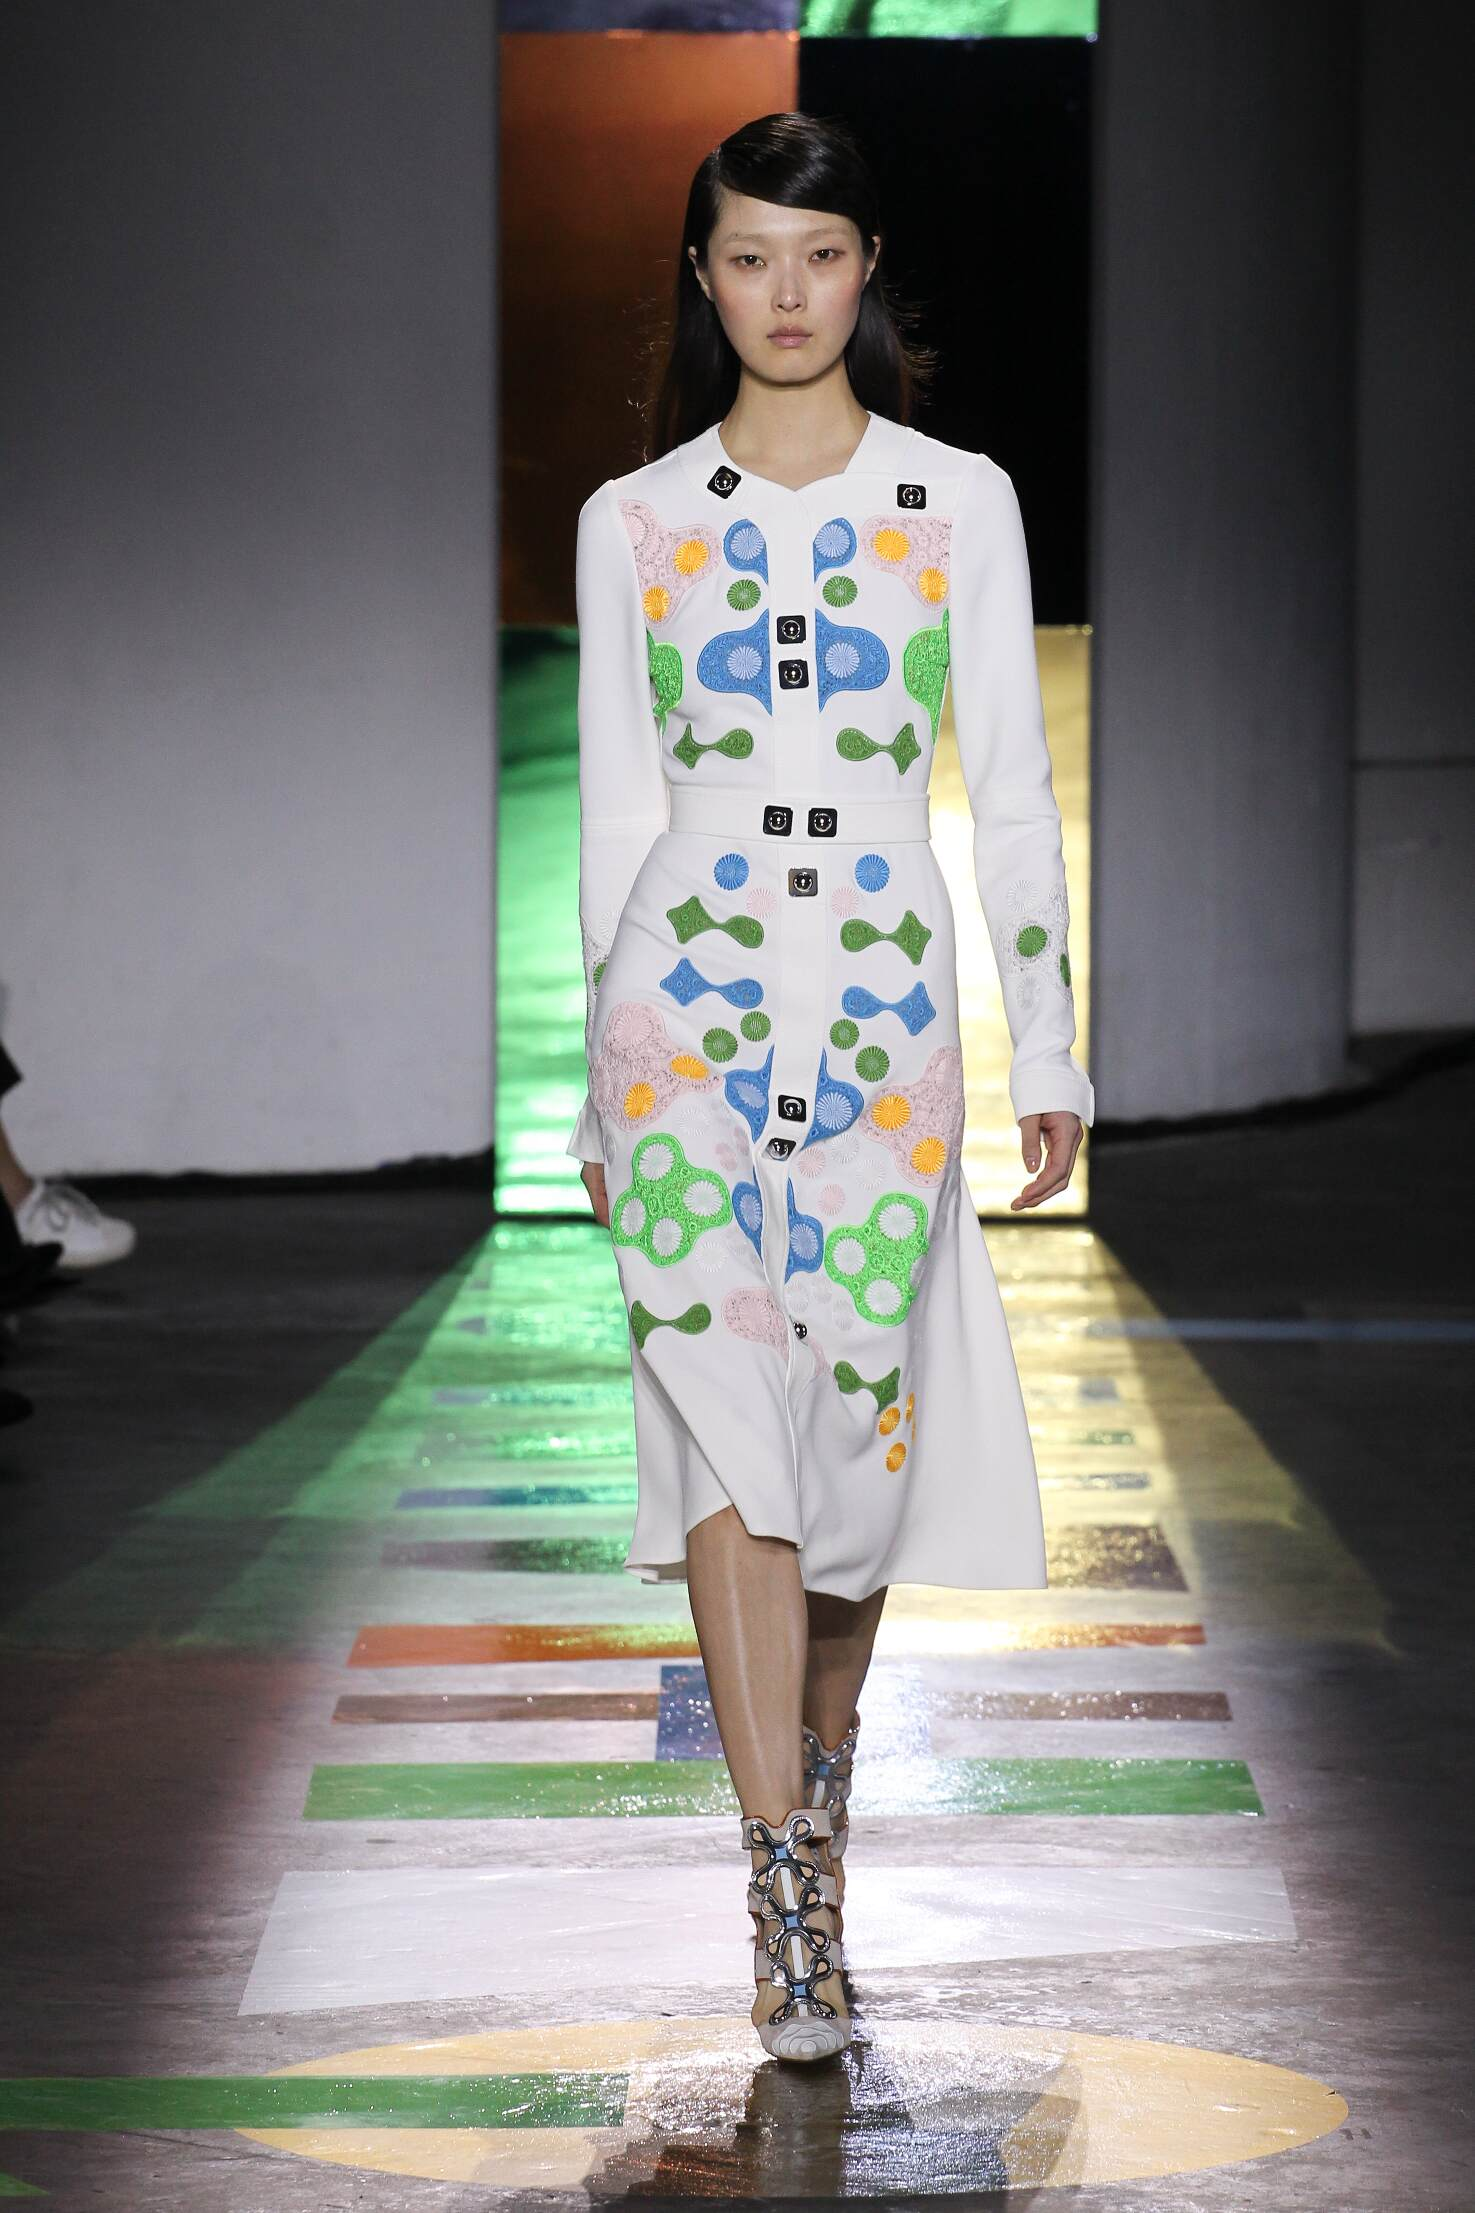 Peter Pilotto Fall Winter 2015 16 Women's Collection London Fashion Week Fashion Show